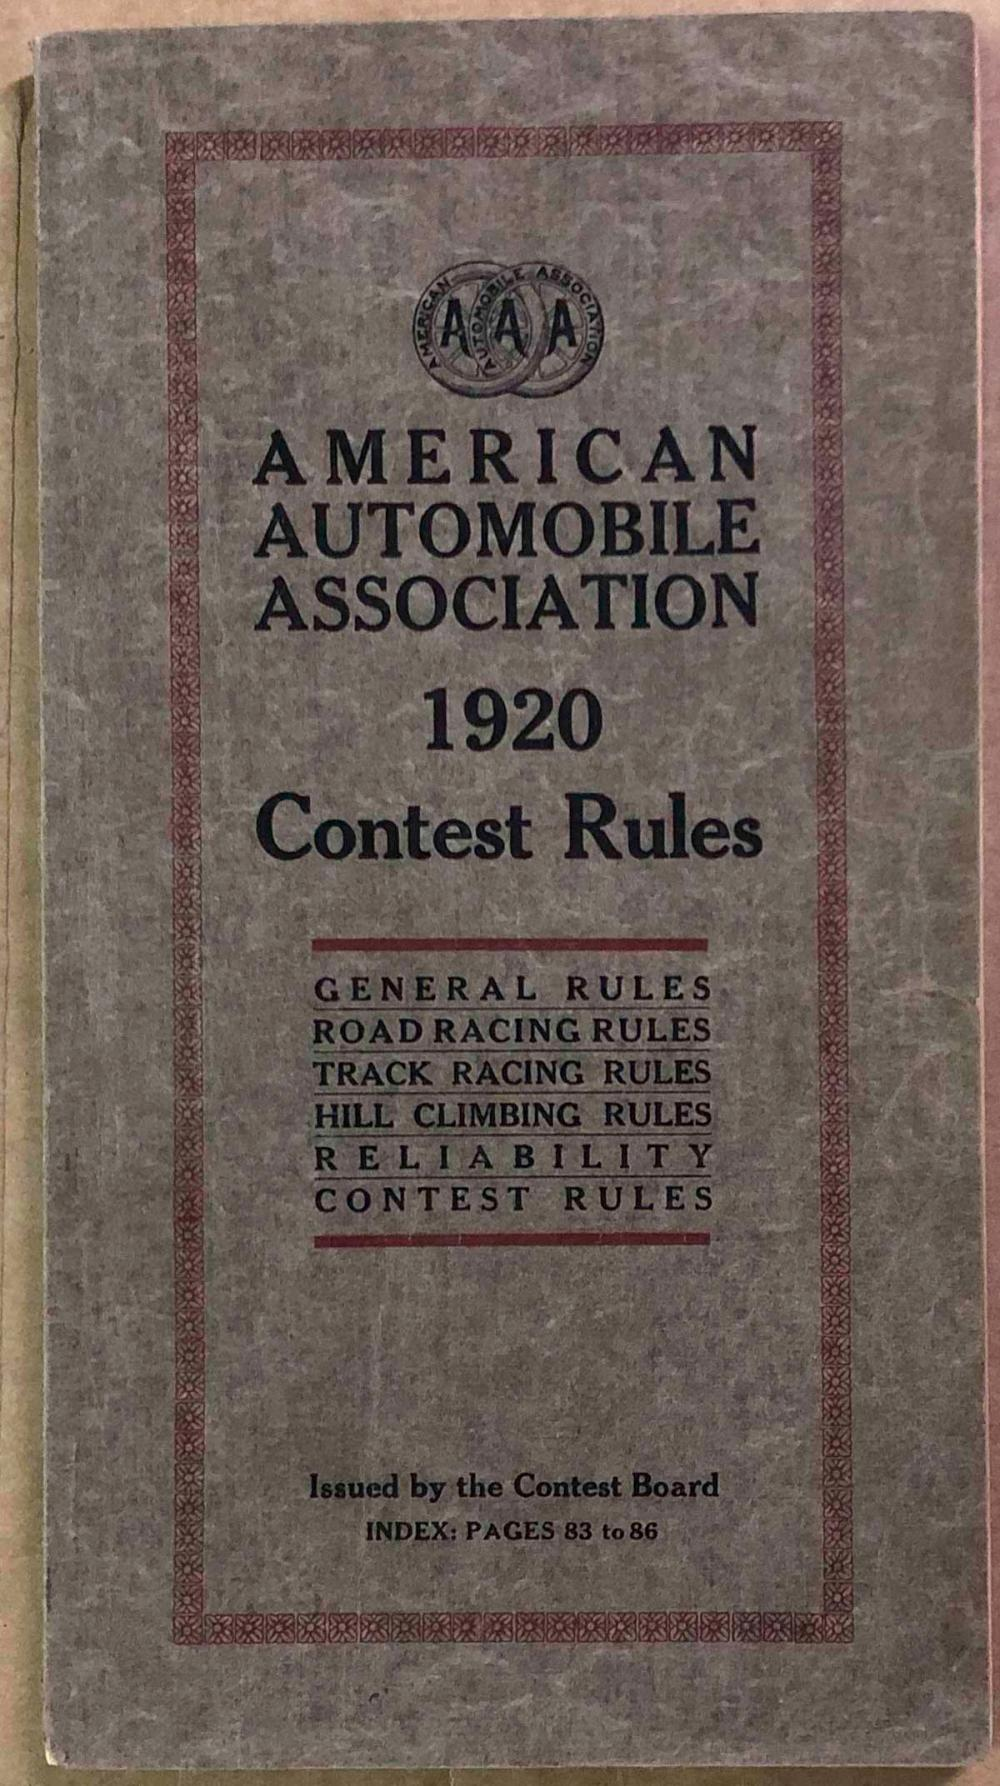 1920 AAA Contest Board rules book